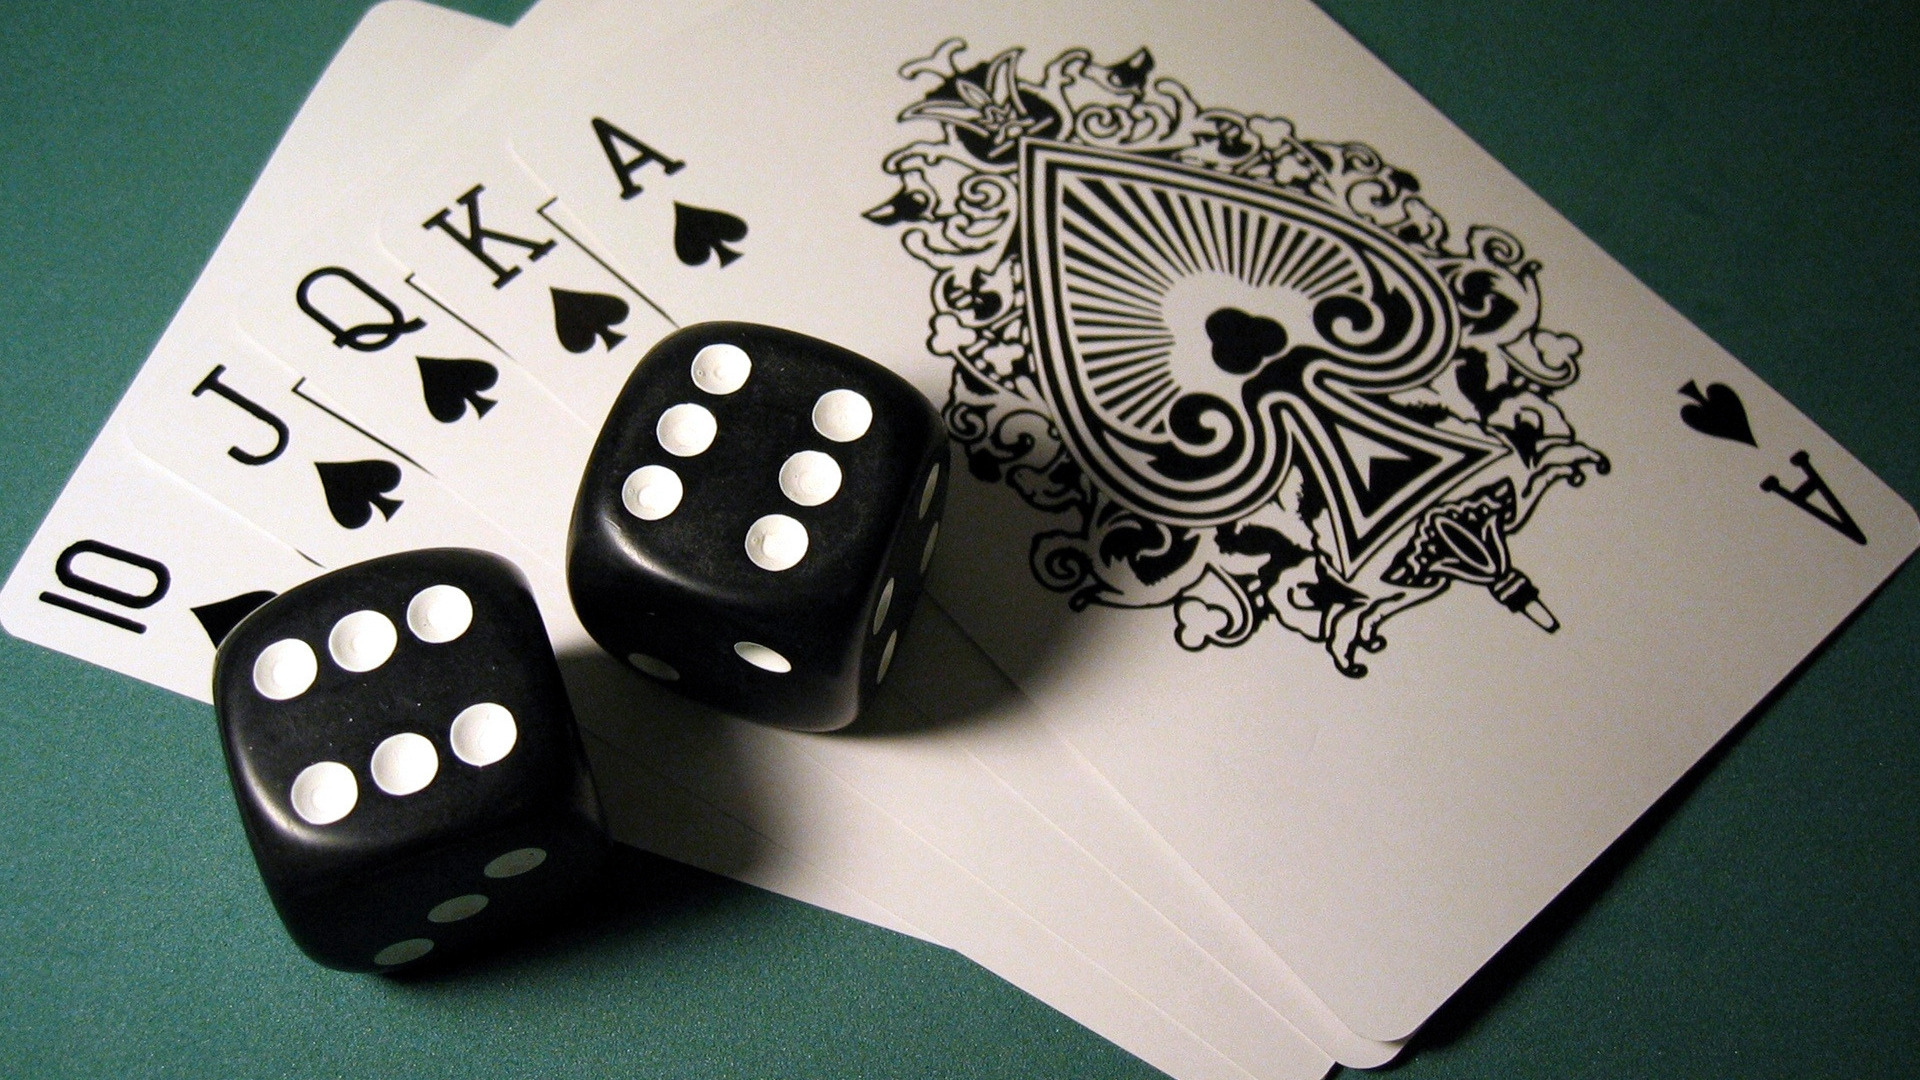 How To purchase (A) Online Gambling On A Tight Budget